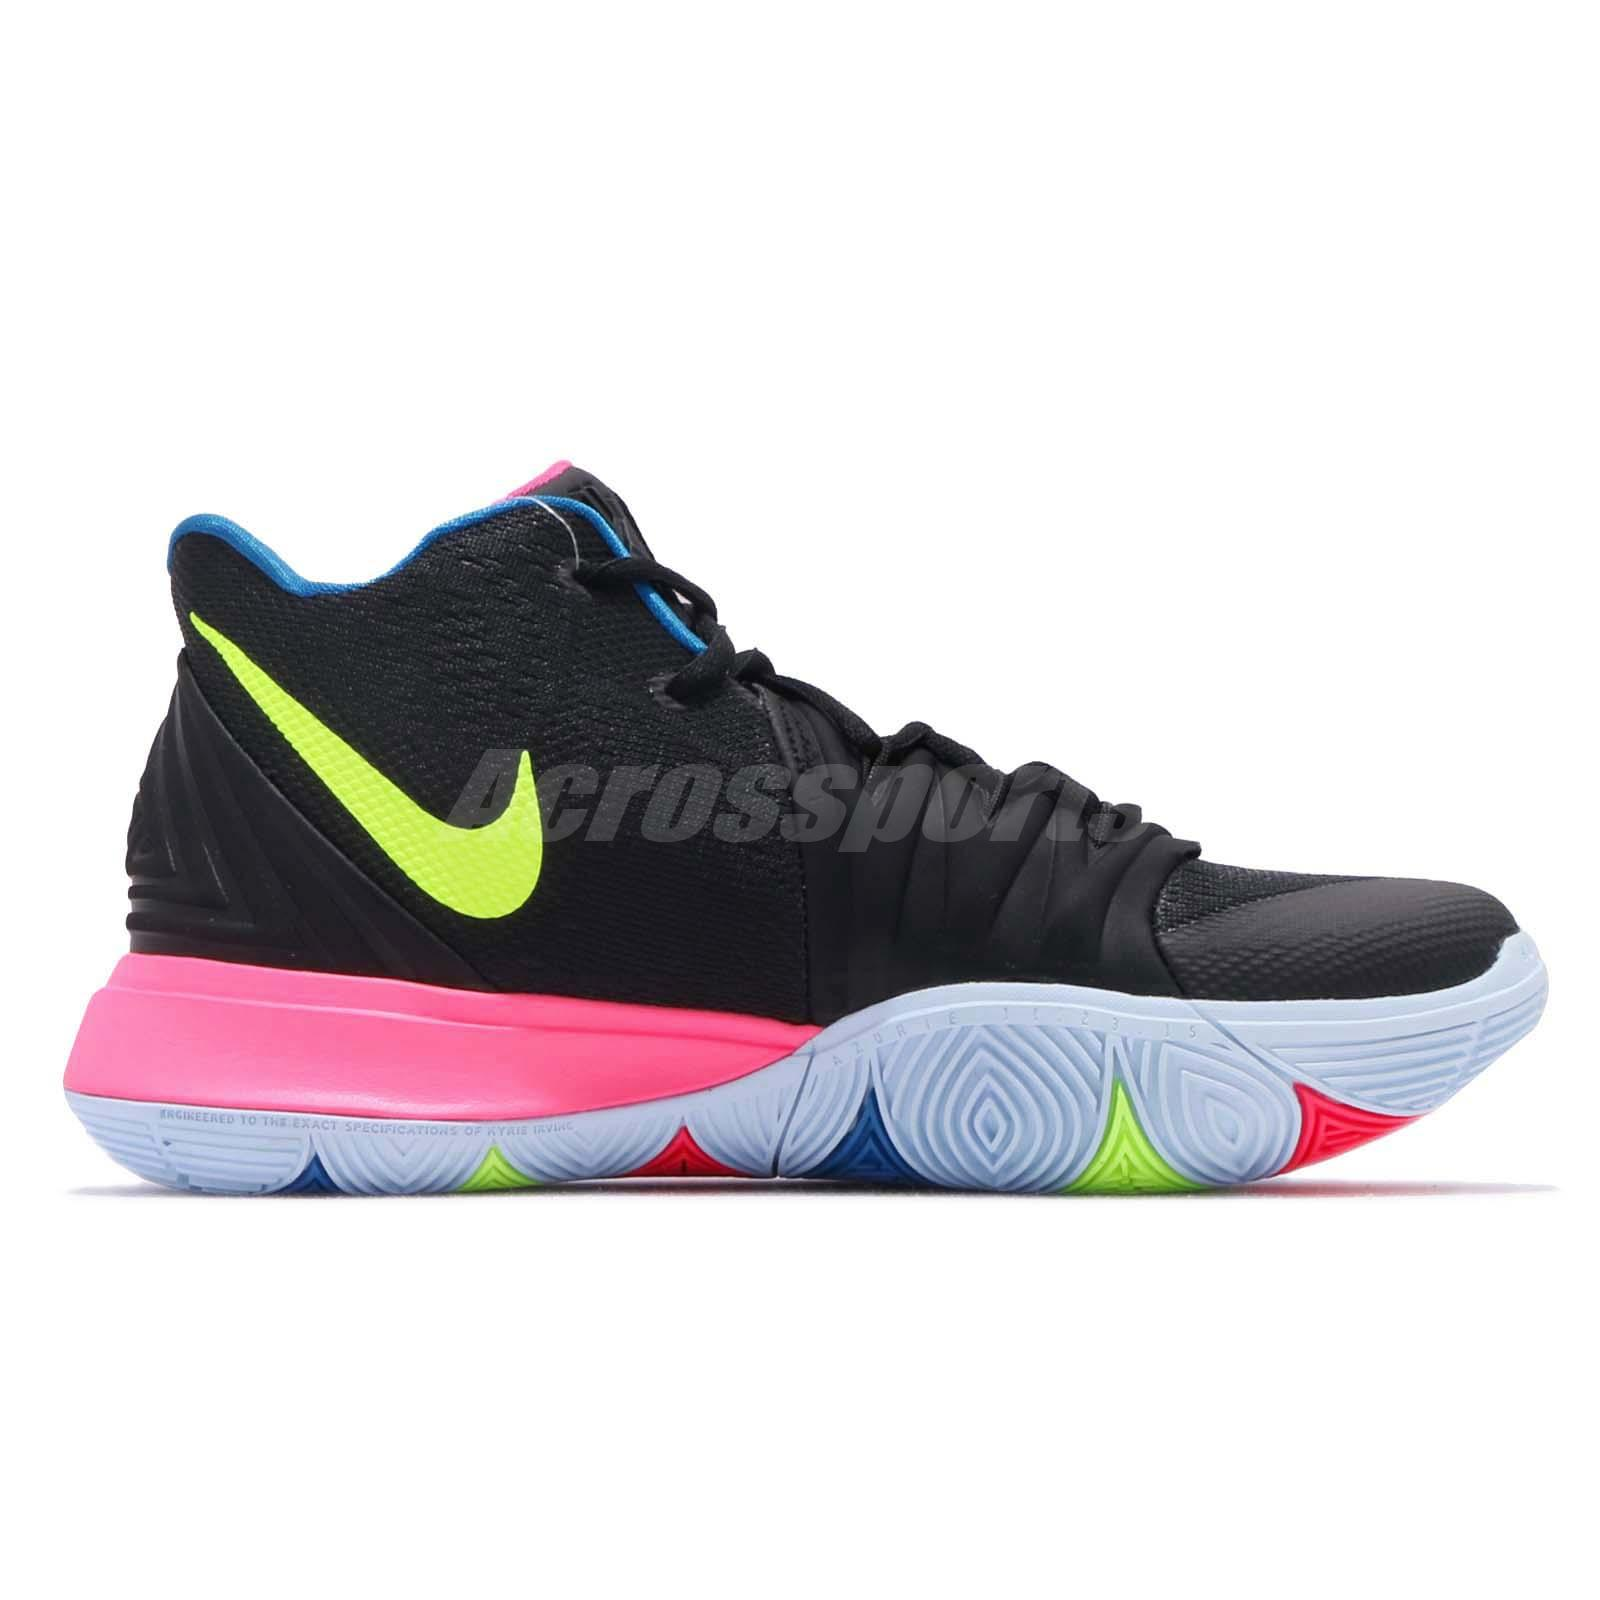 premium selection 5886e f4406 Nike Kyrie 5 EP V Irving Just Do It Black Pink Men Shoes Sneakers ...